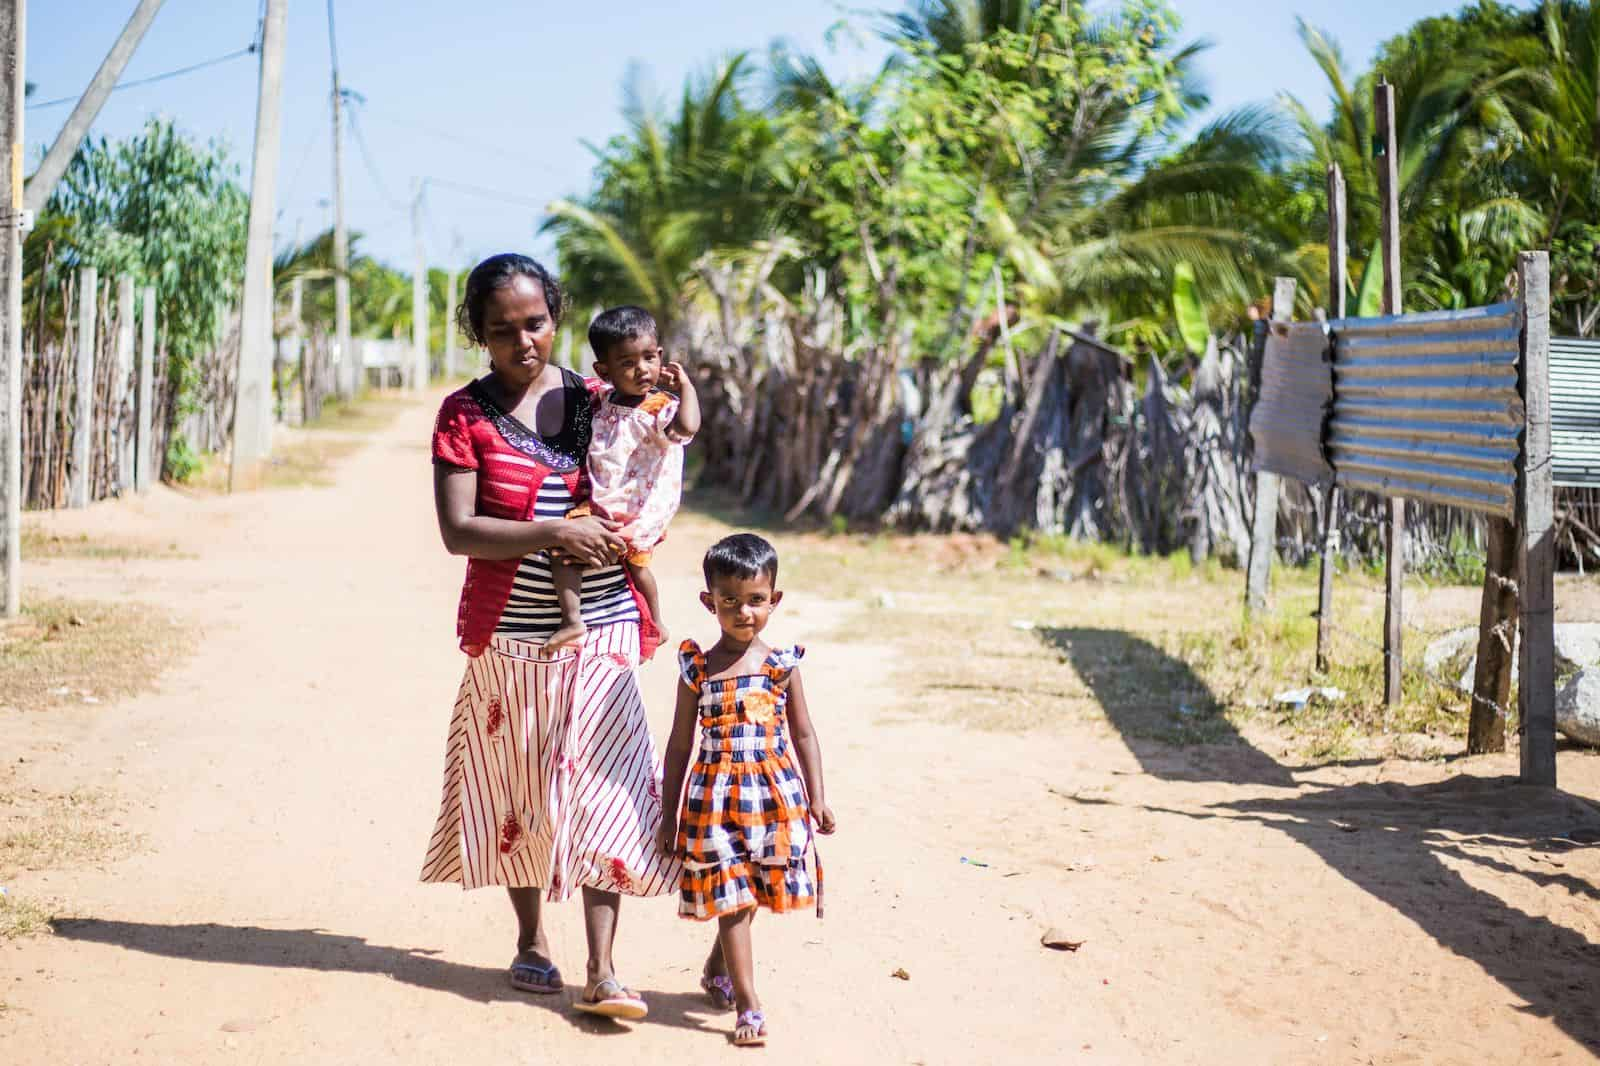 A woman holding a toddler and a girl walk down a dirt road.